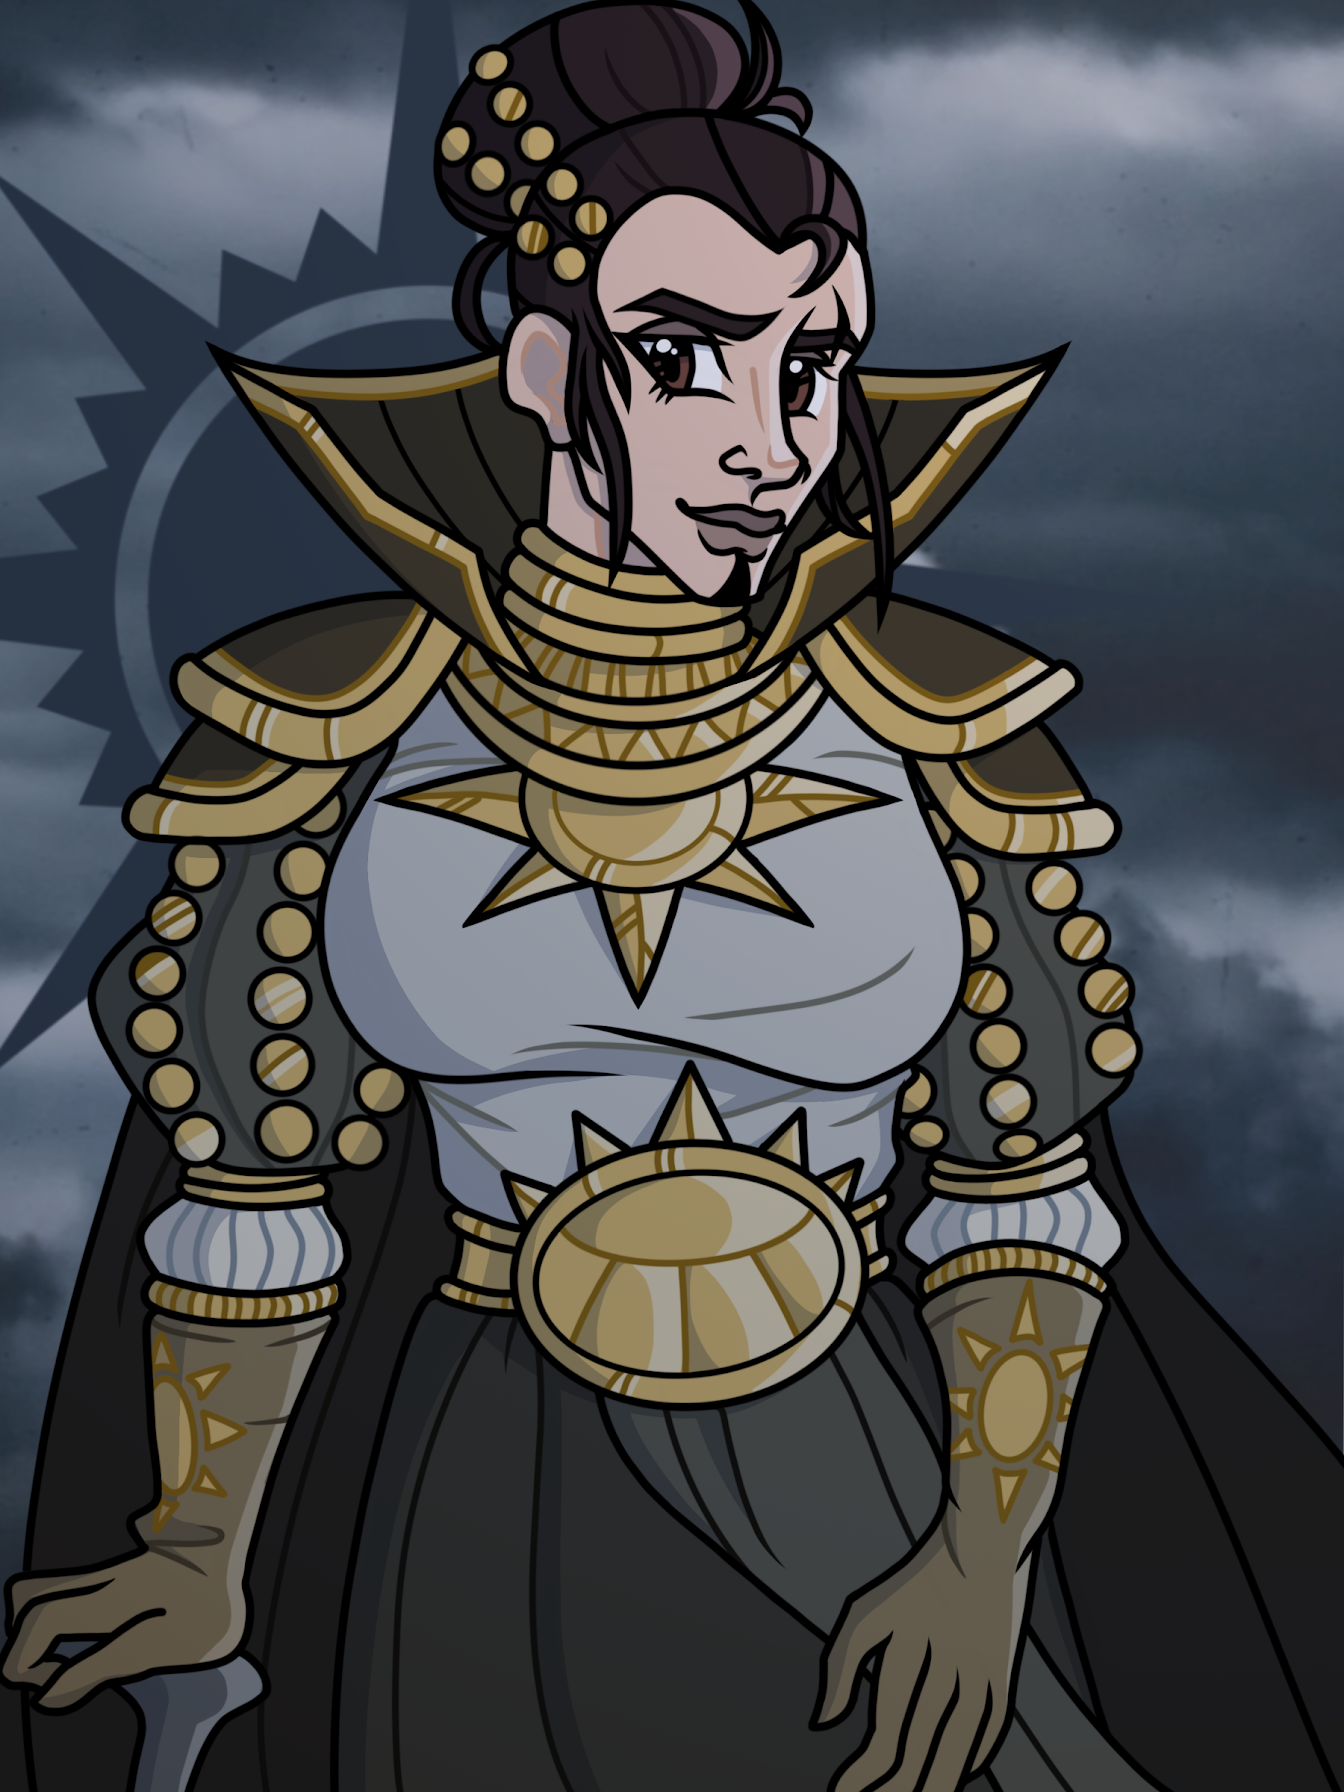 Teysa Karlov Orzhov Scion By Httpspooky On Deviantart Want to discover art related to orzhov? teysa karlov orzhov scion by